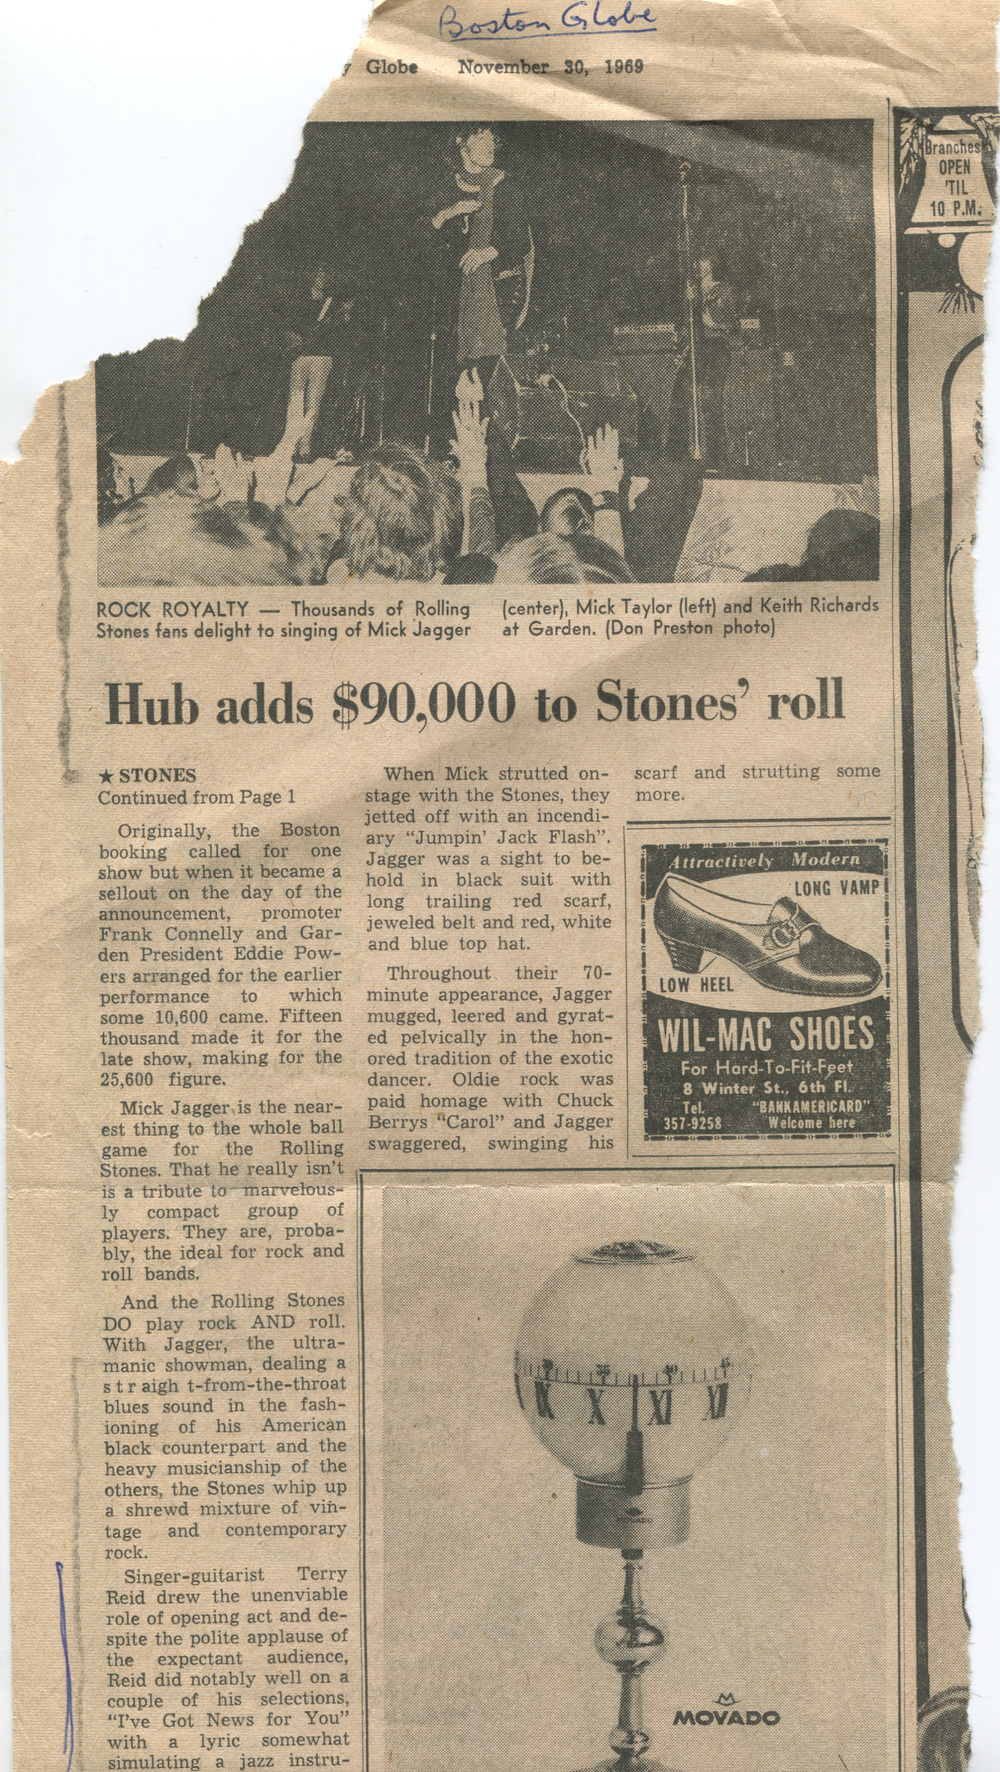 Rolling-Stones-Tour-Mention-1.jpg